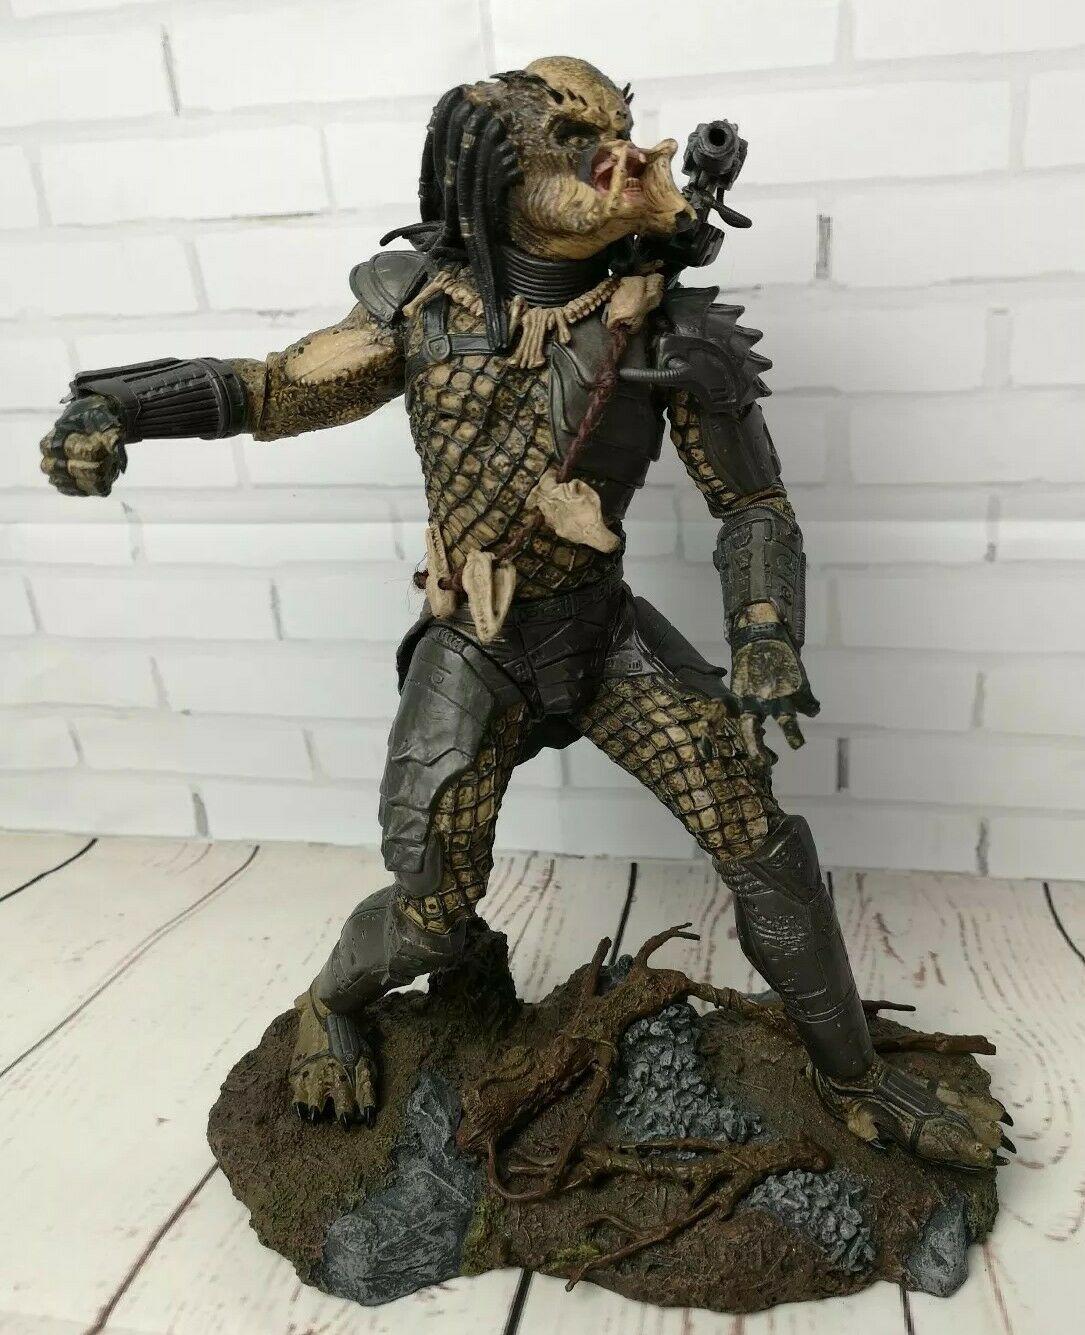 RARE GRAND McFarlane Toys Prougeator 12  inch action figure 2004 Alien, collector